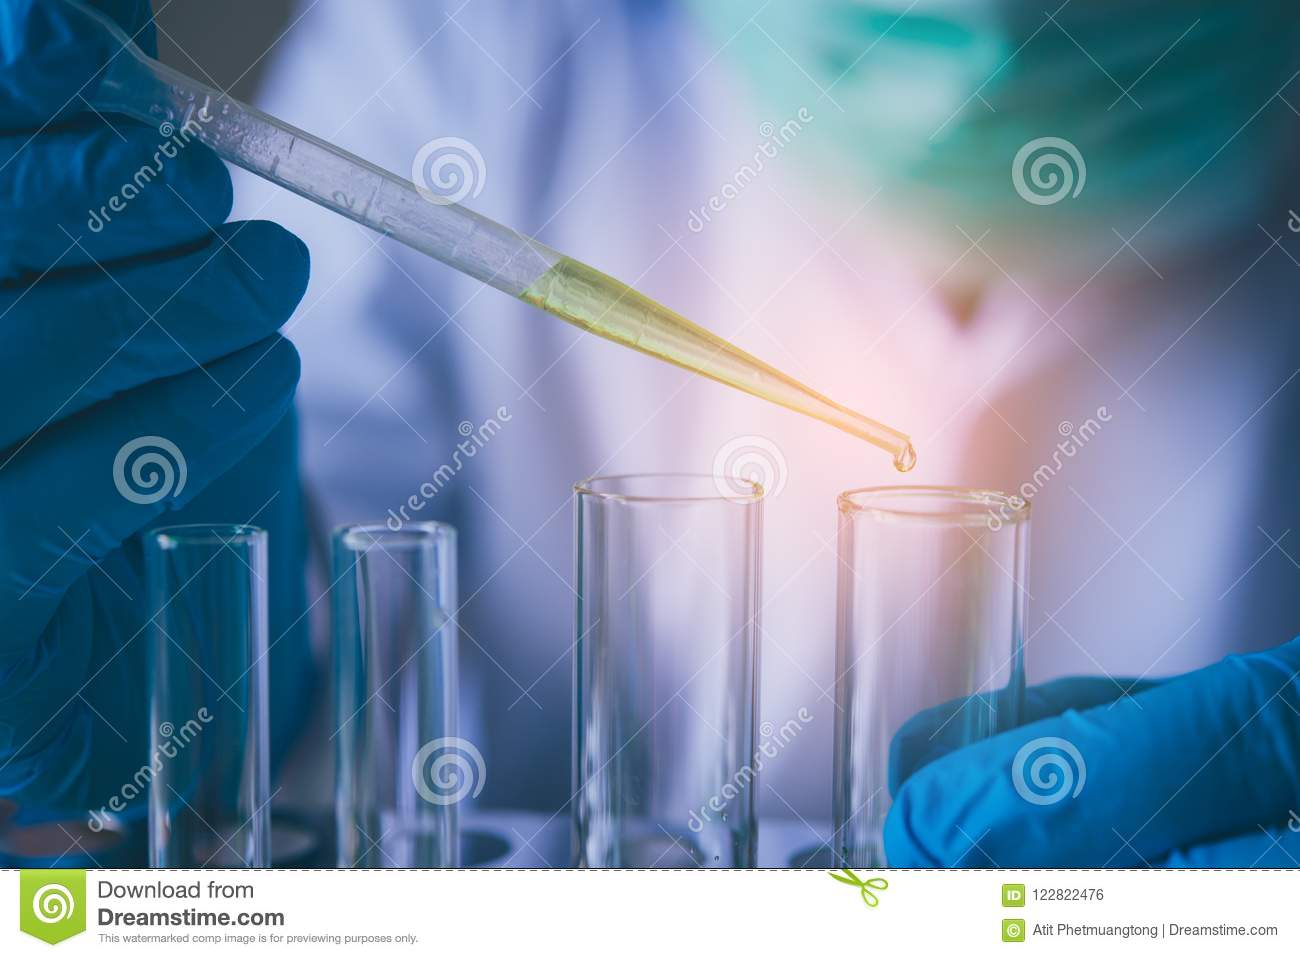 Equipment And Science Experiments Oil Pouring Scientist With Test Tube Green Making Research In